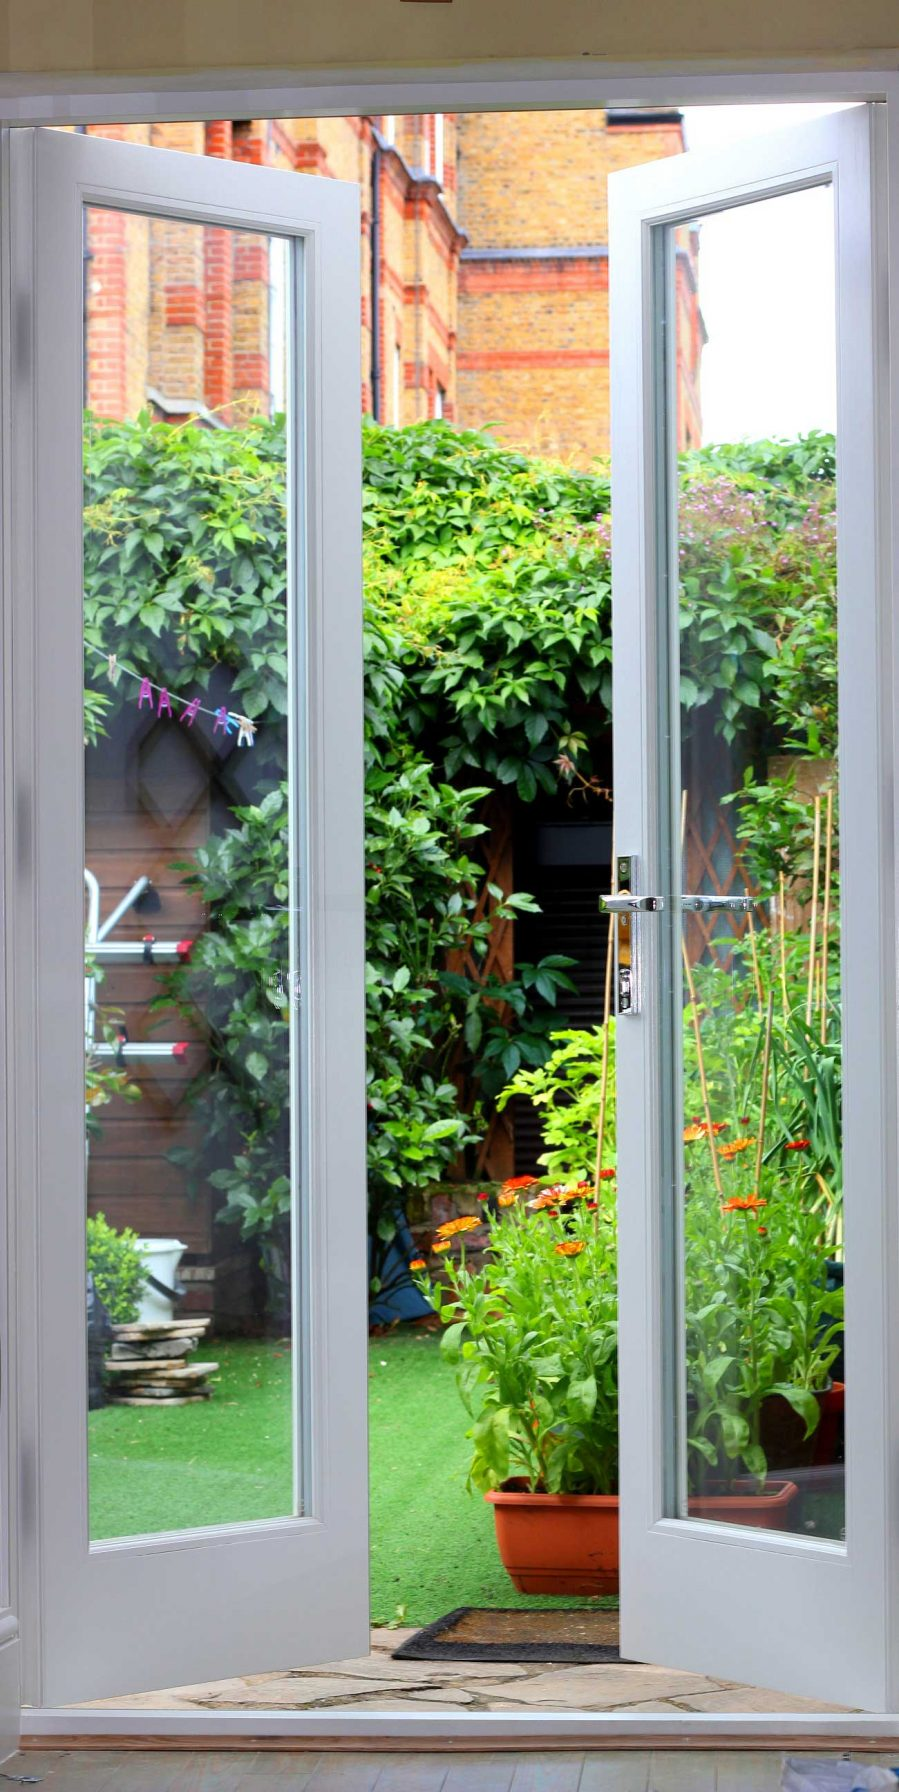 Gallery Image: Internal view of French Doors leading to London garden